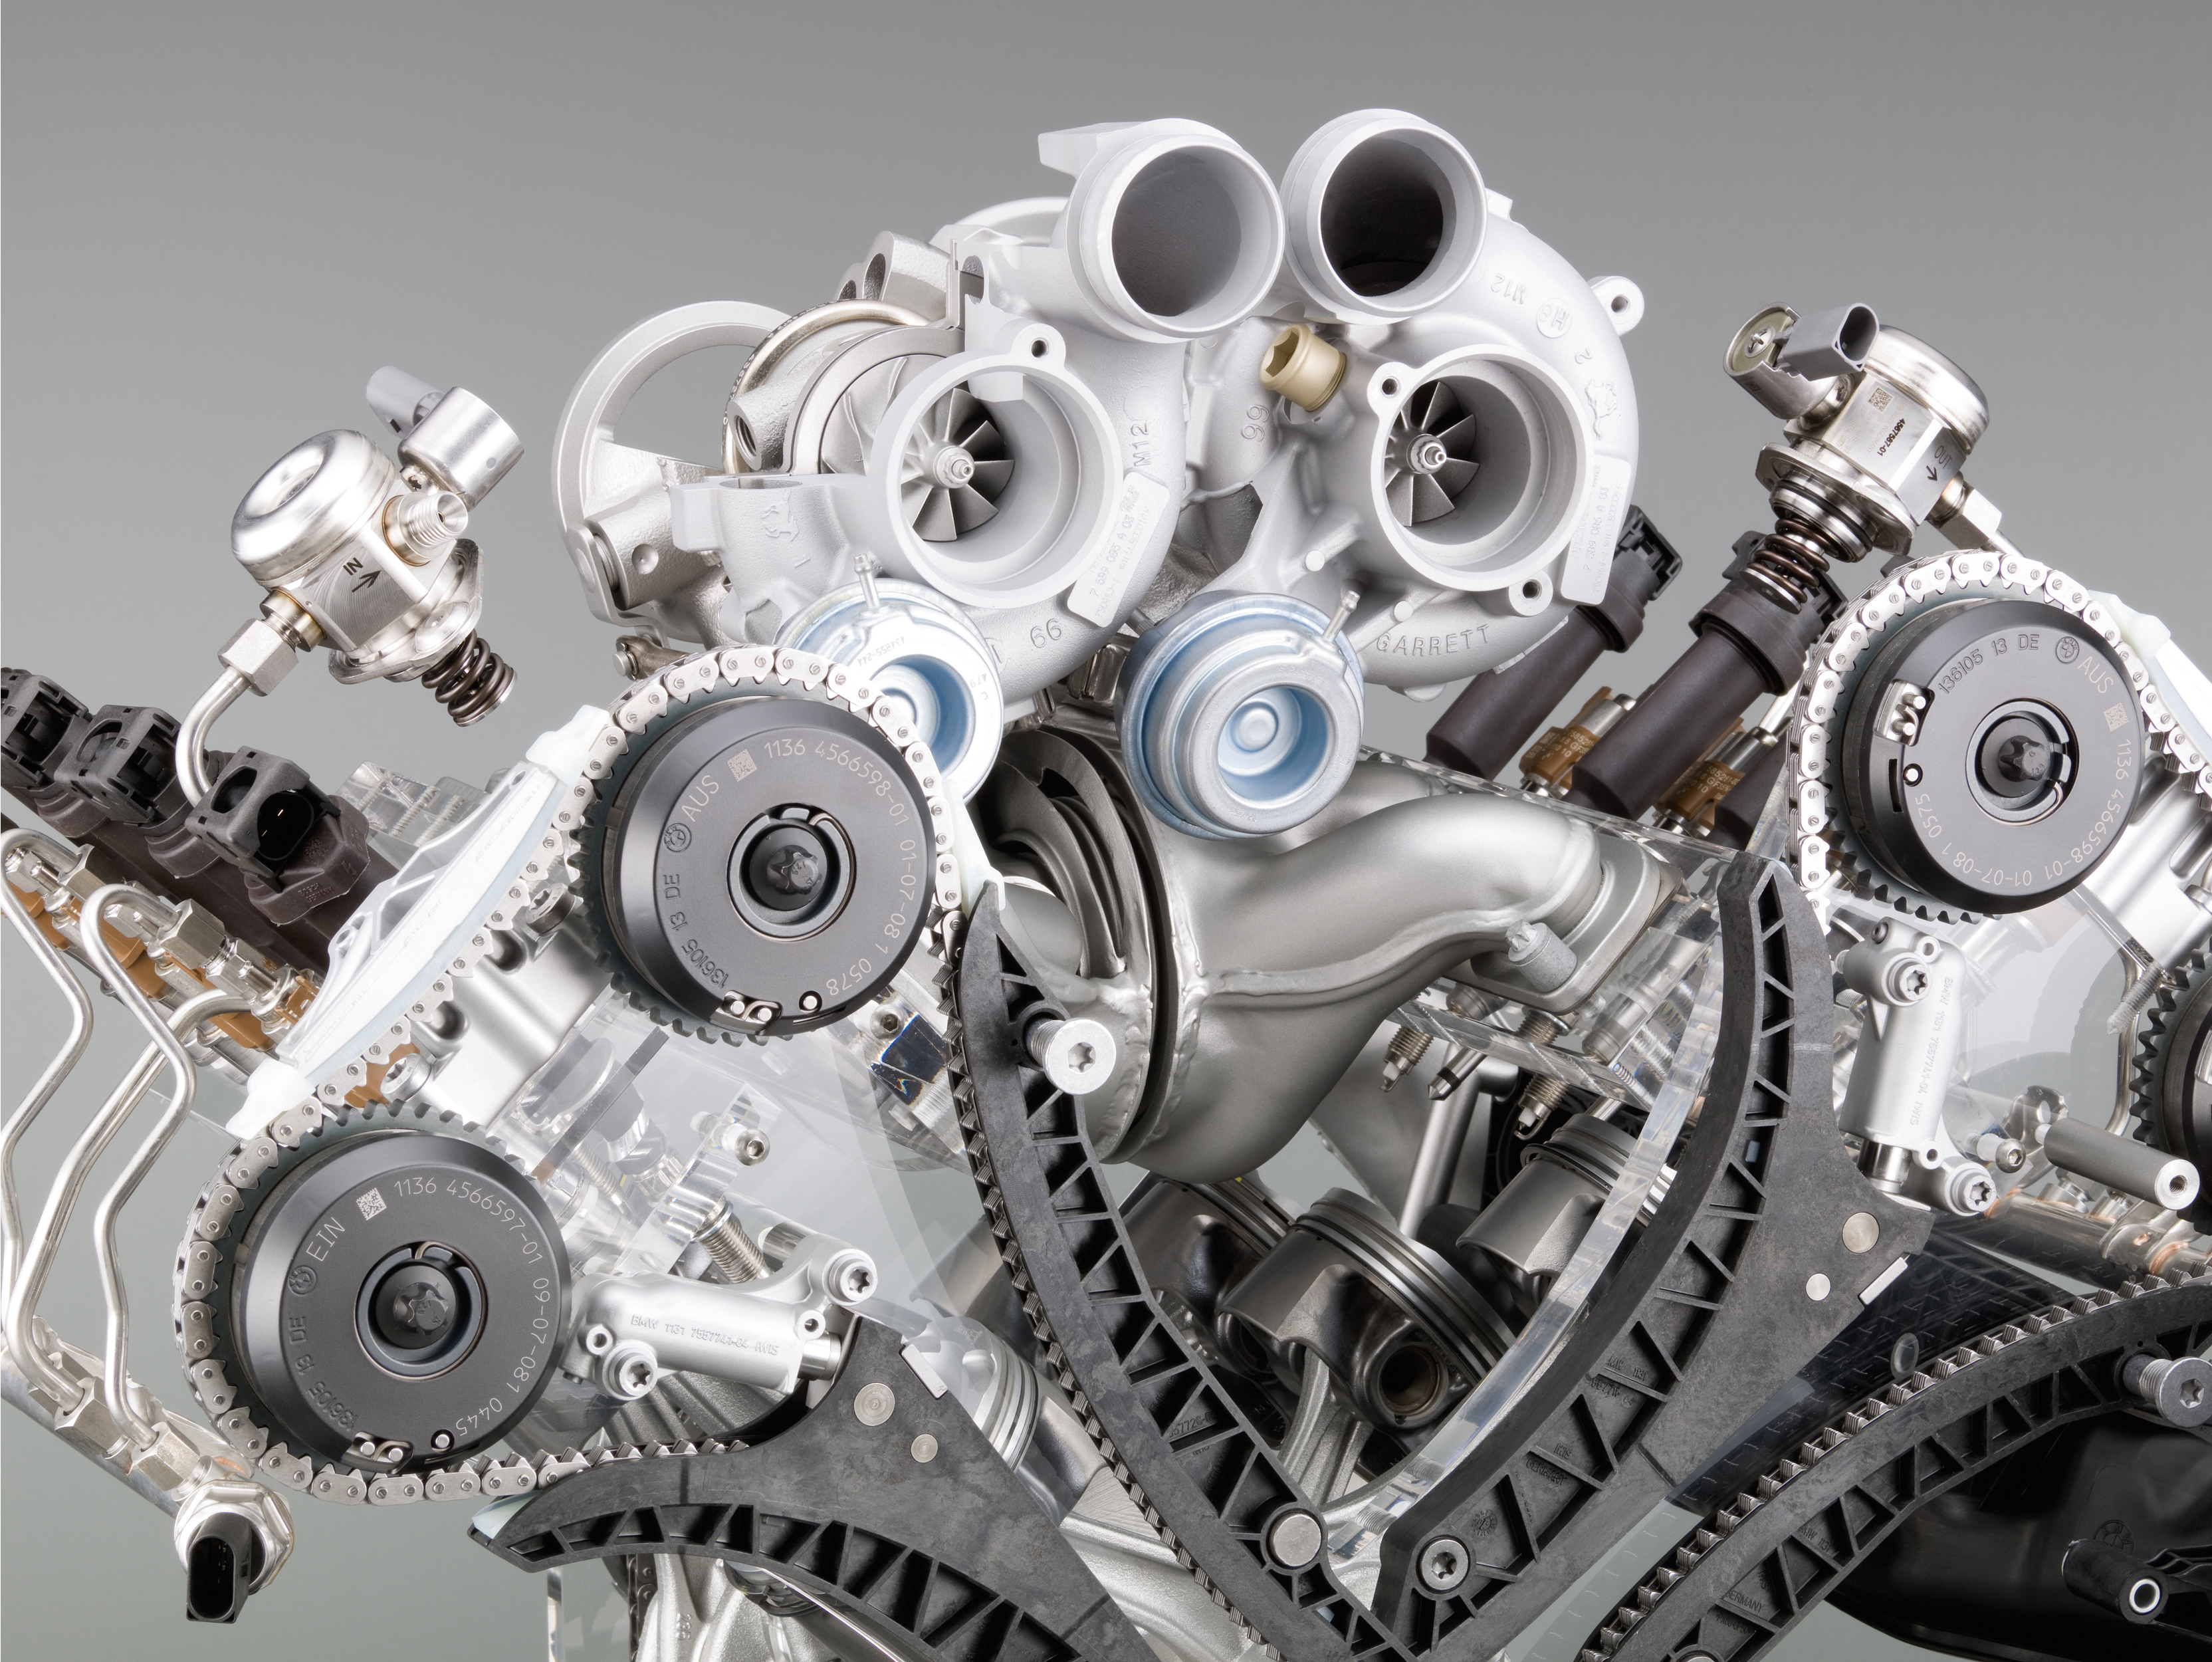 Engine Pictures BMW M5 F10 Concept!-p90045745.jpg